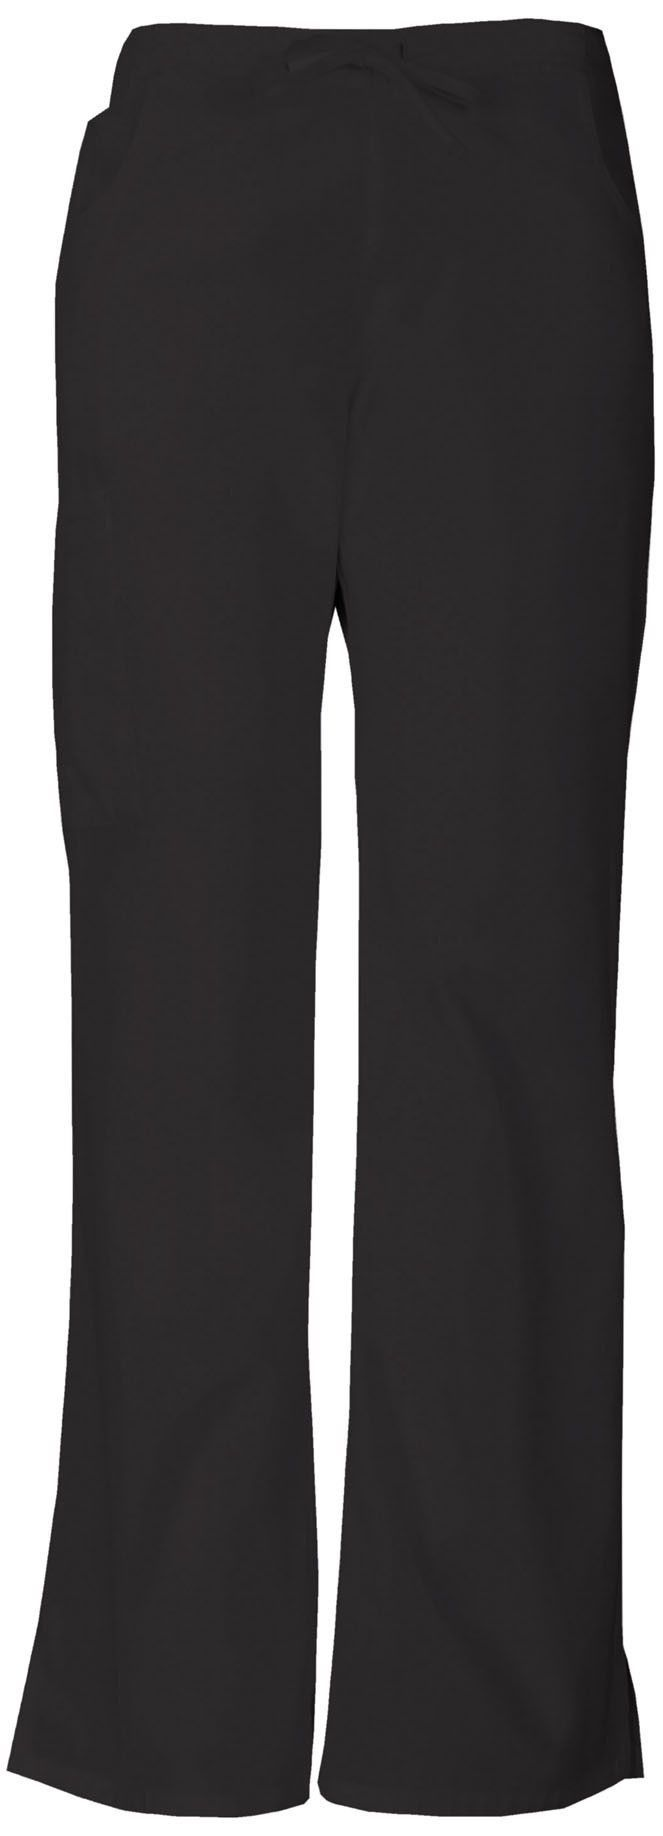 Women's Everyday Signature Mid Rise Drawstring Cargo Pant - Black